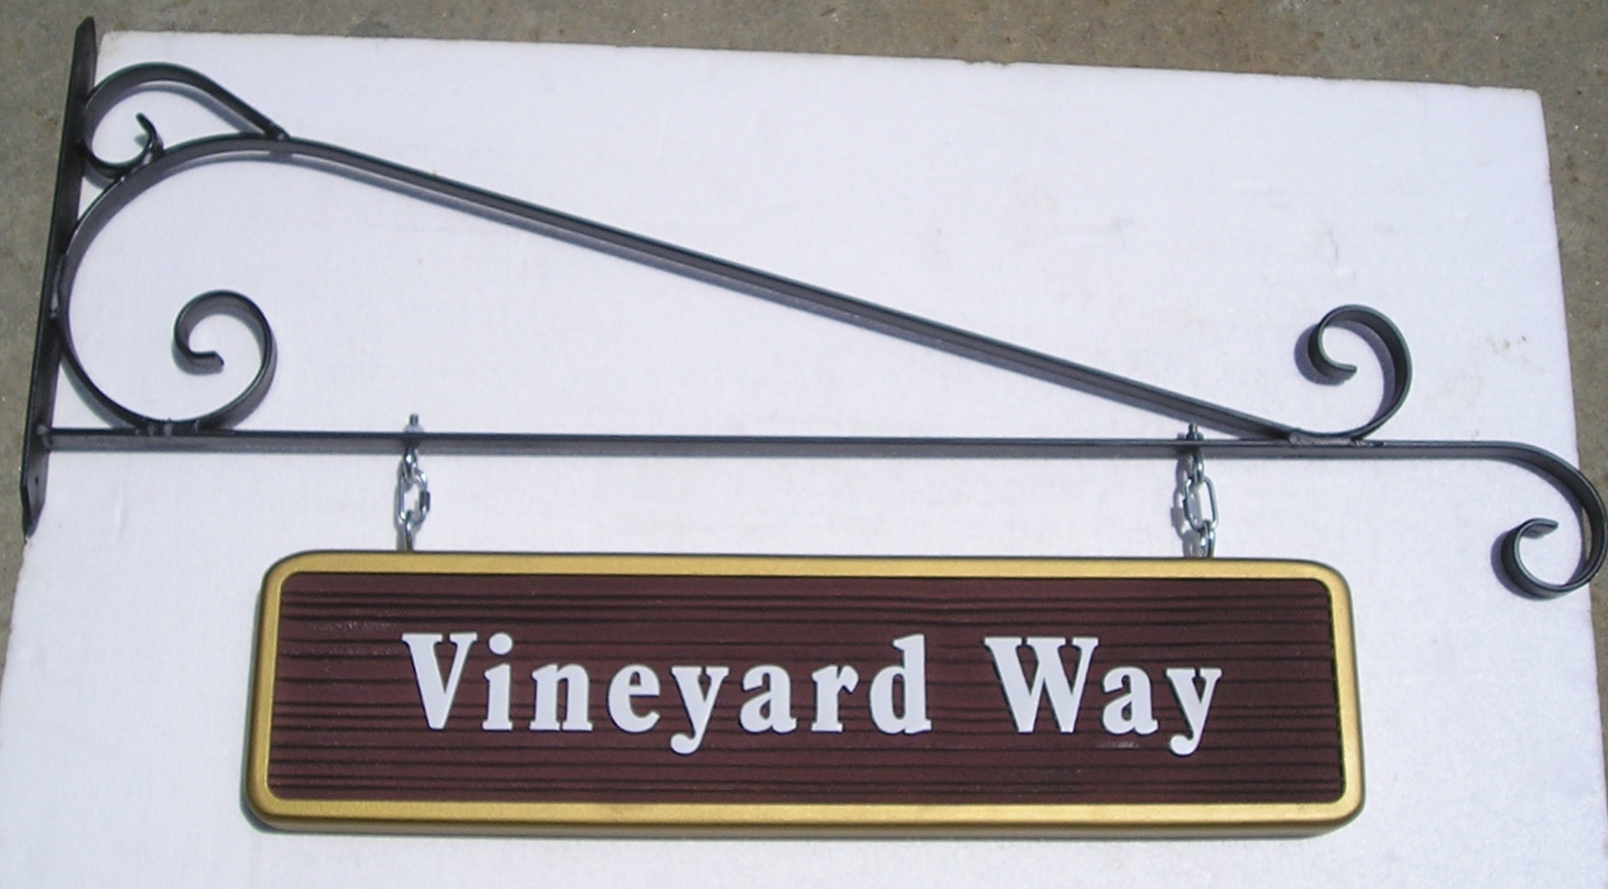 M1600 - Street Name Sign with Wrought Iron Hangar (Gallery 17)